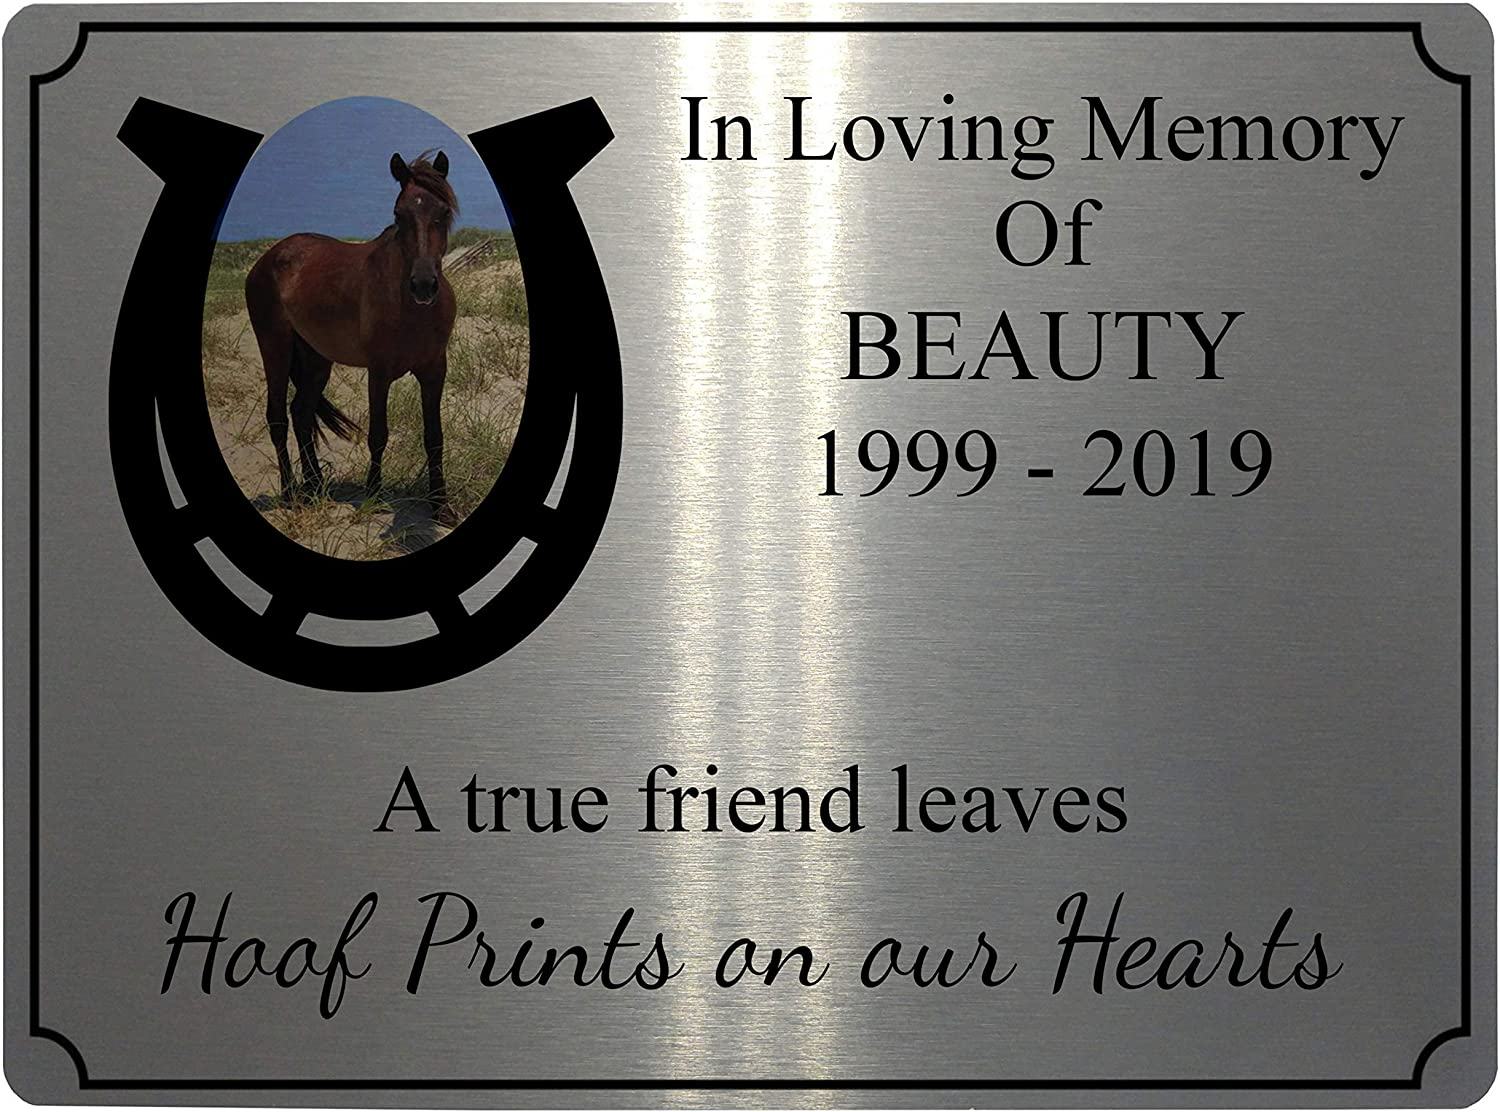 197x141mm, Brushed Silver Personalised Memorial Photo Pets Horse Shoe Pony Metal Aluminium Plaque Sign 4 Sizes